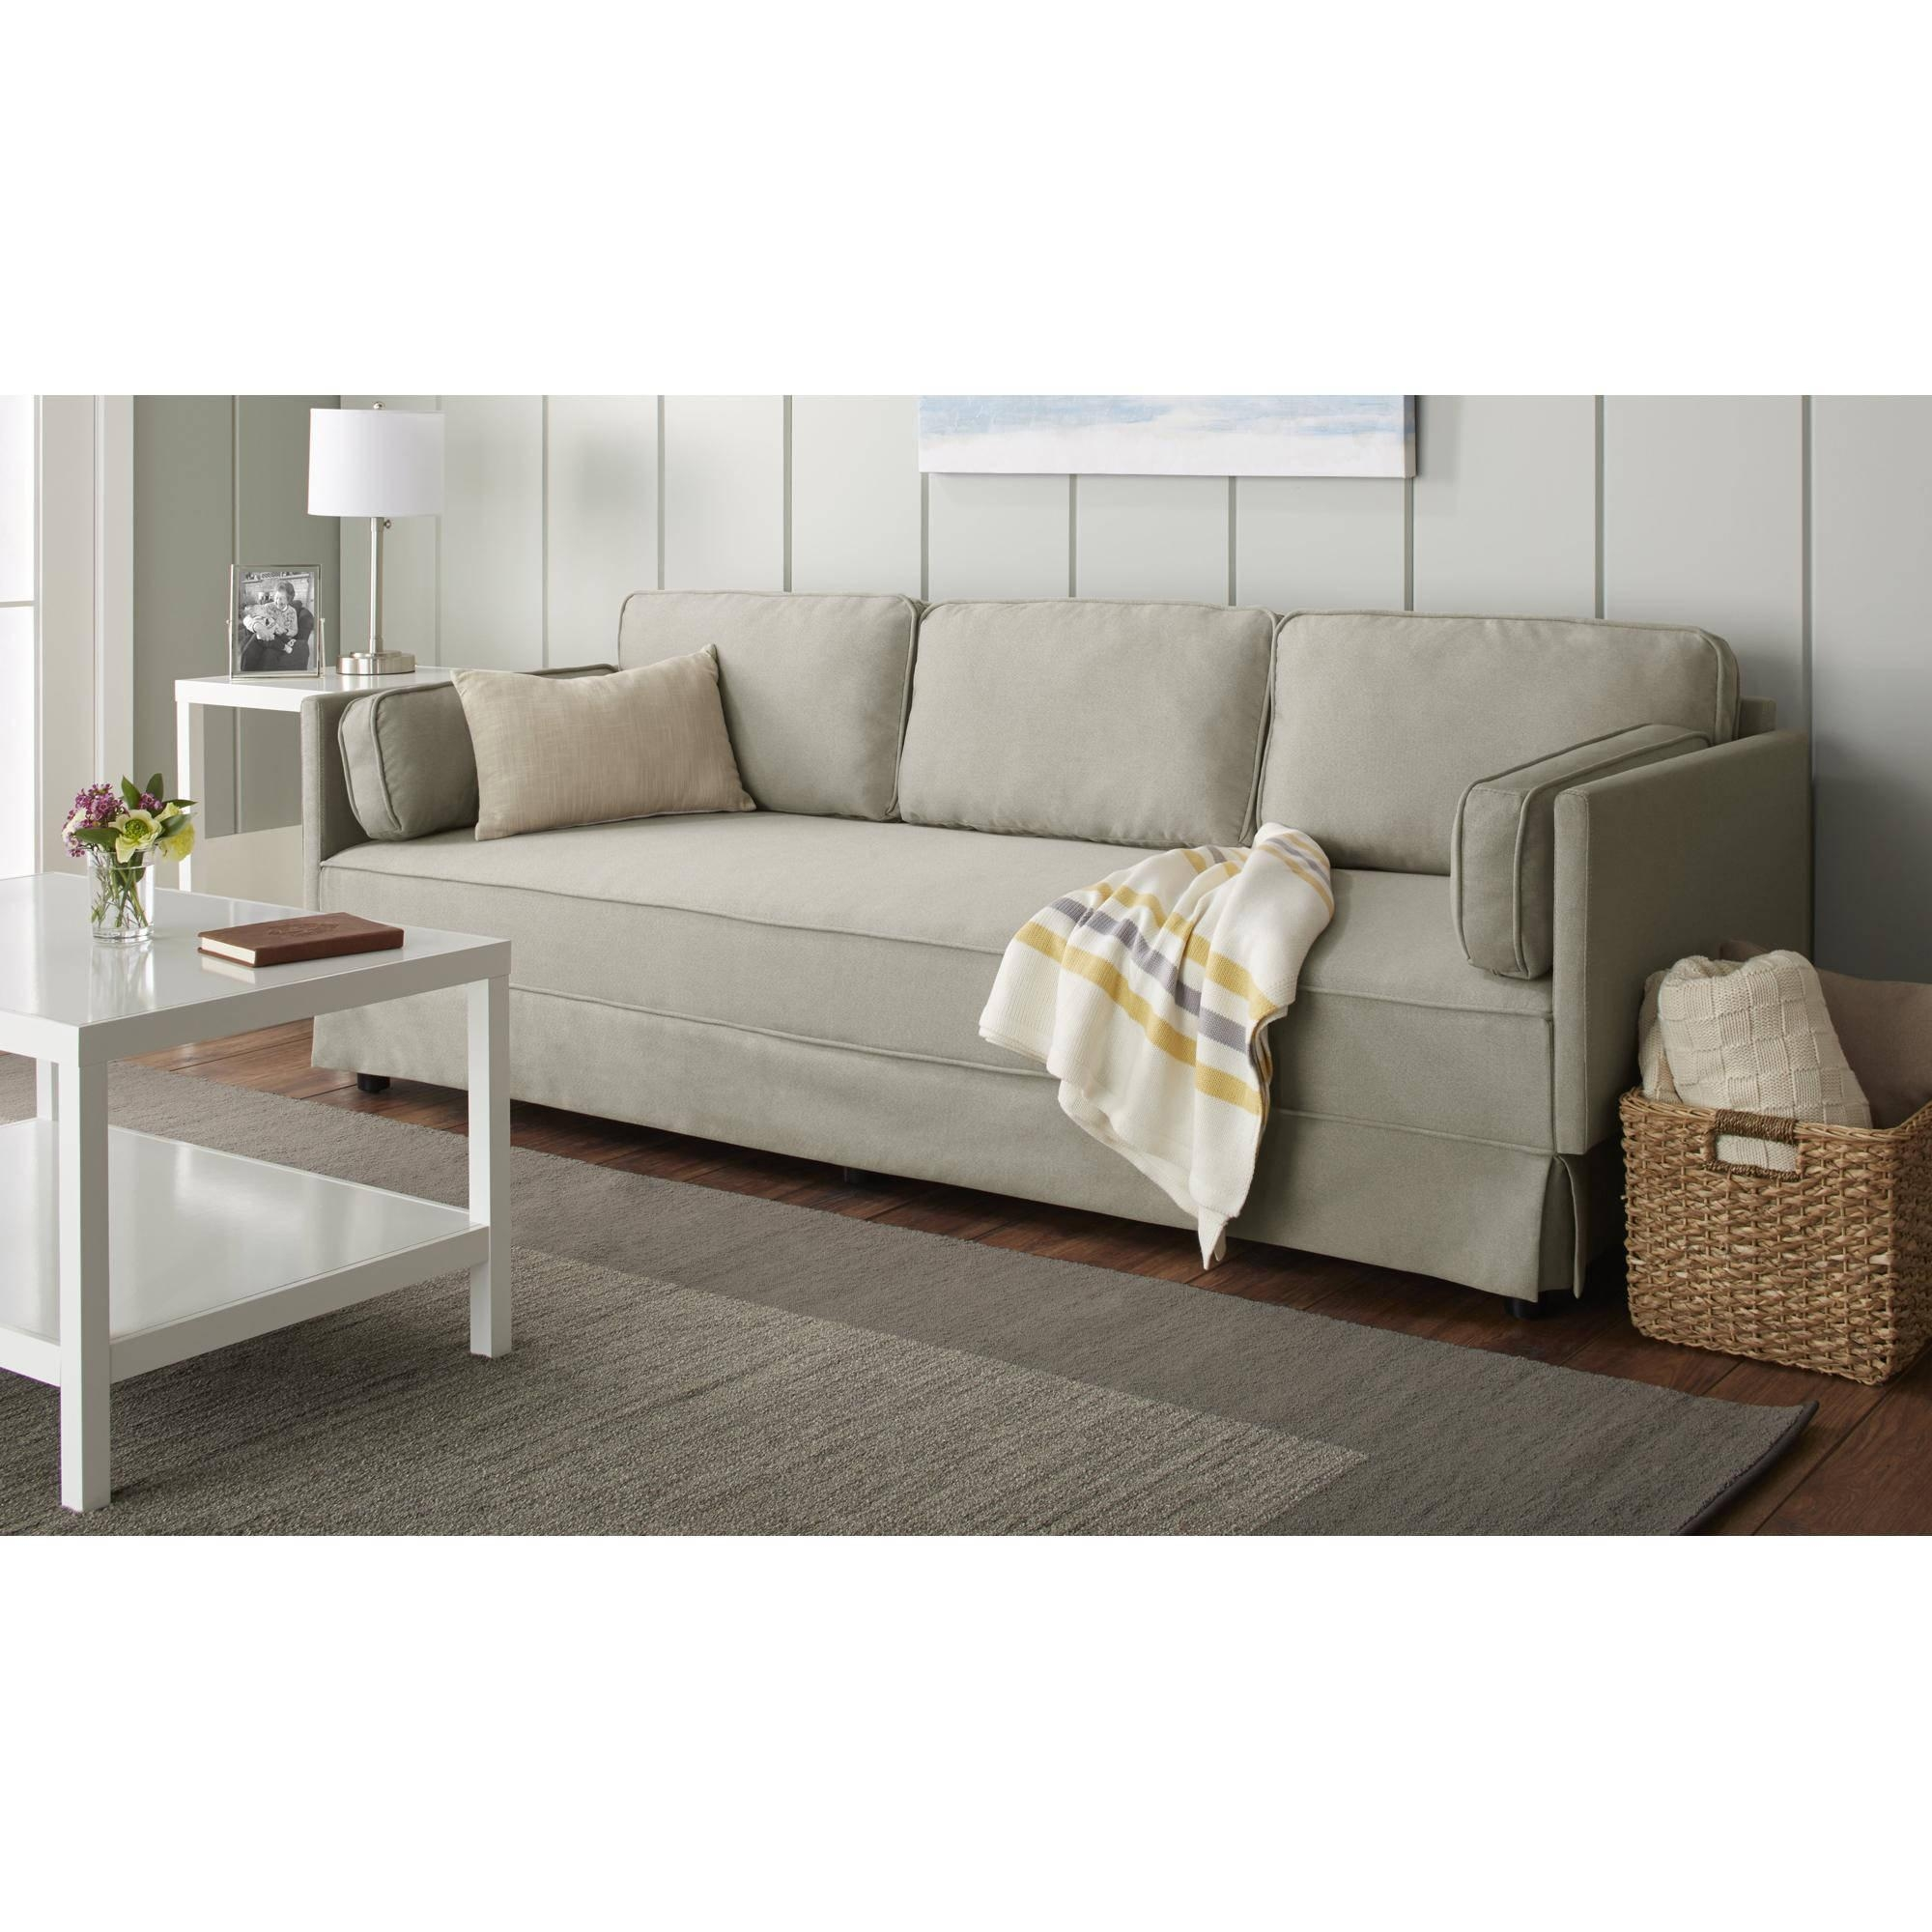 10 Spring Street Durant Sofa, Multiple Colors – Walmart With Wallmart Sofa (Image 3 of 20)